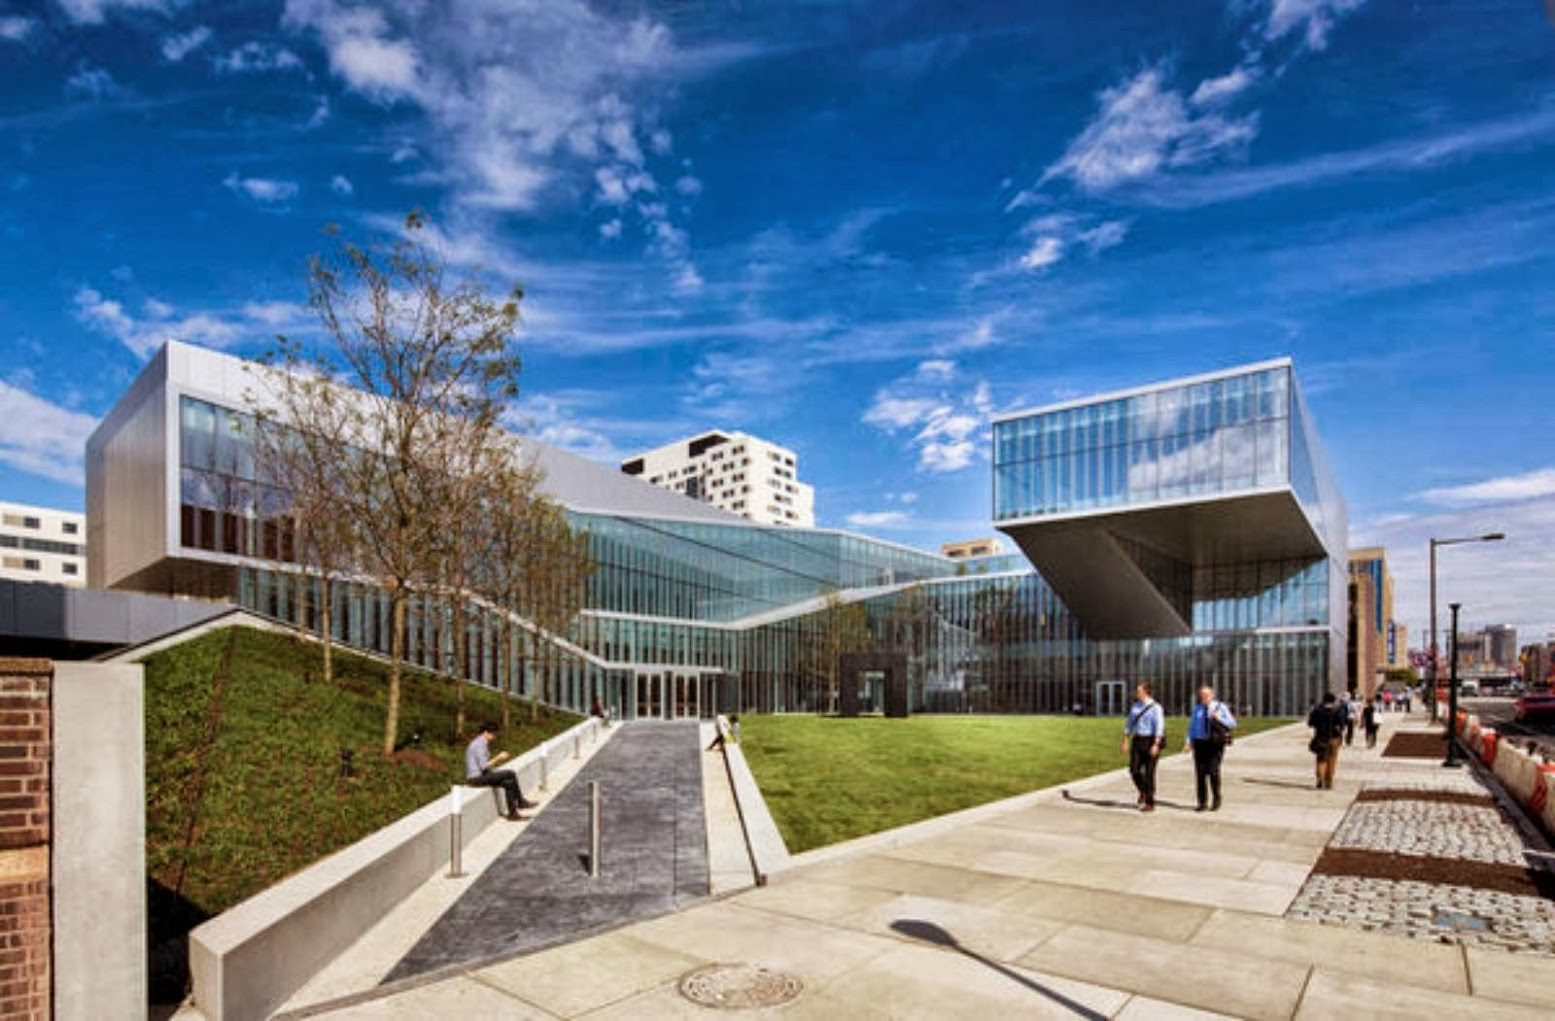 Filadelfia, Pennsylvania, Stati Uniti: [KRISHNA P. SINGH CENTER FOR NANOTECHNOLOGY BY WEISS/MANFREDI]